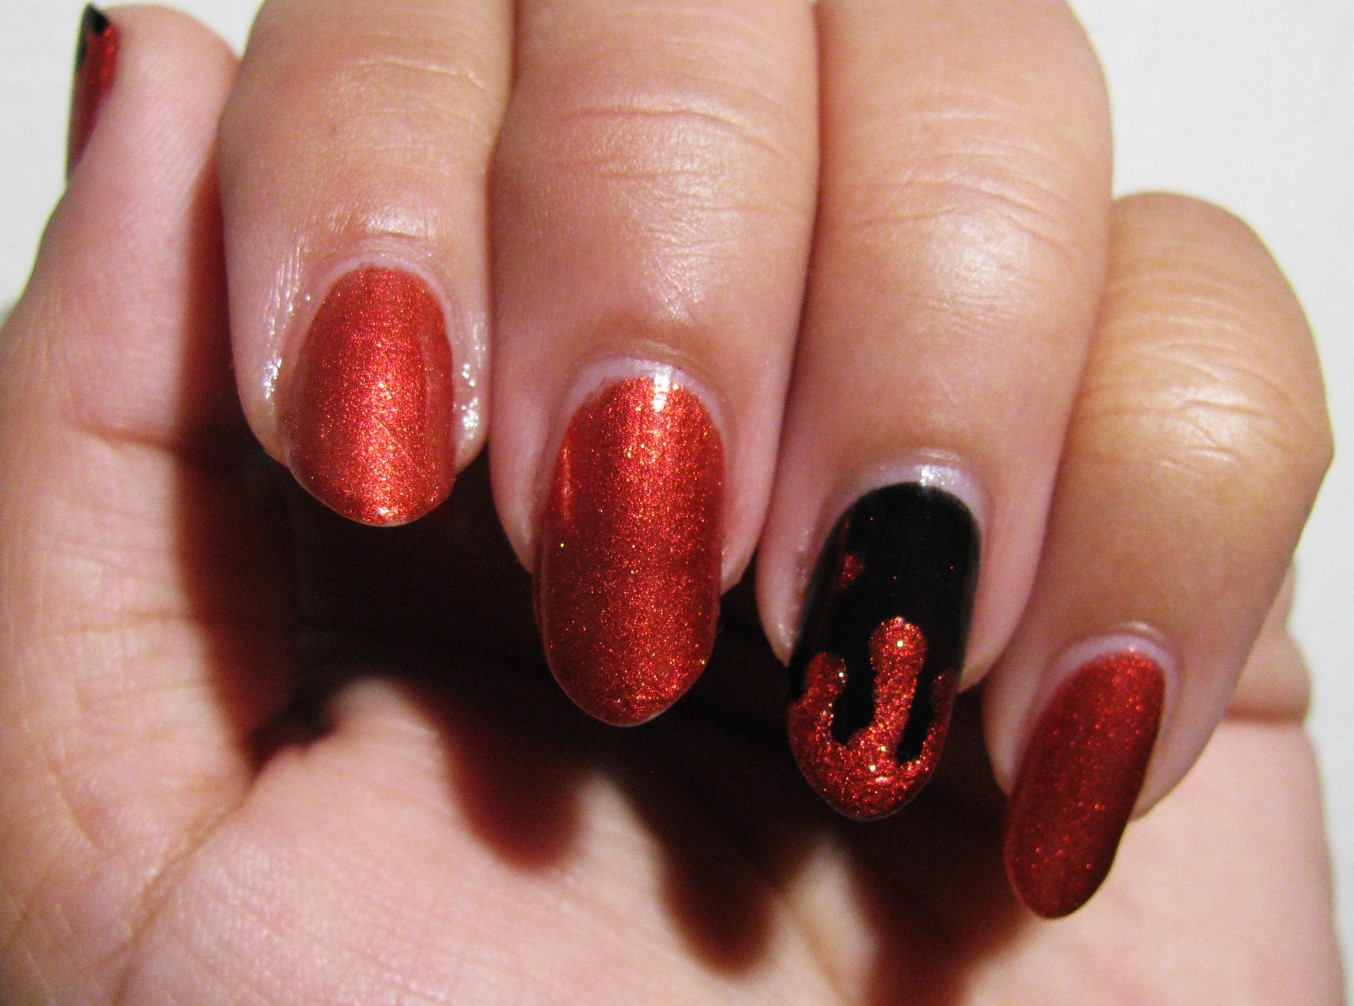 The Super Secret Nail Blog: Easy Halloween Nail Art ...